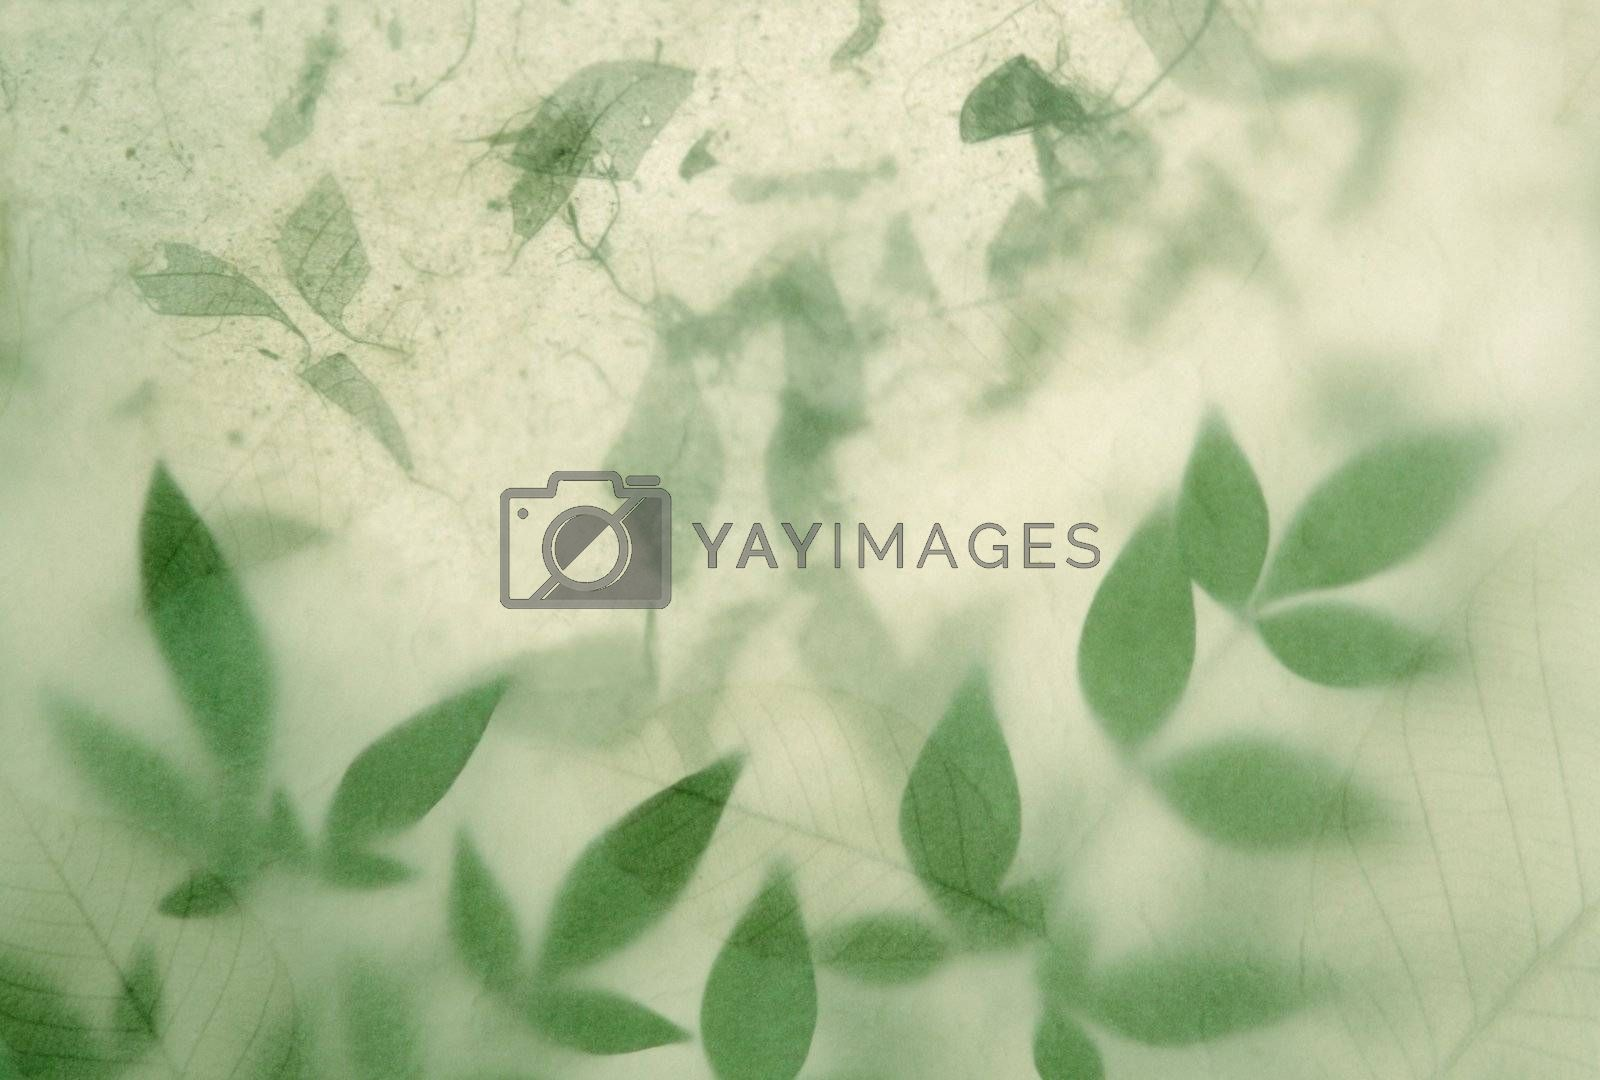 Royalty free image of leaves on leaves by nebari